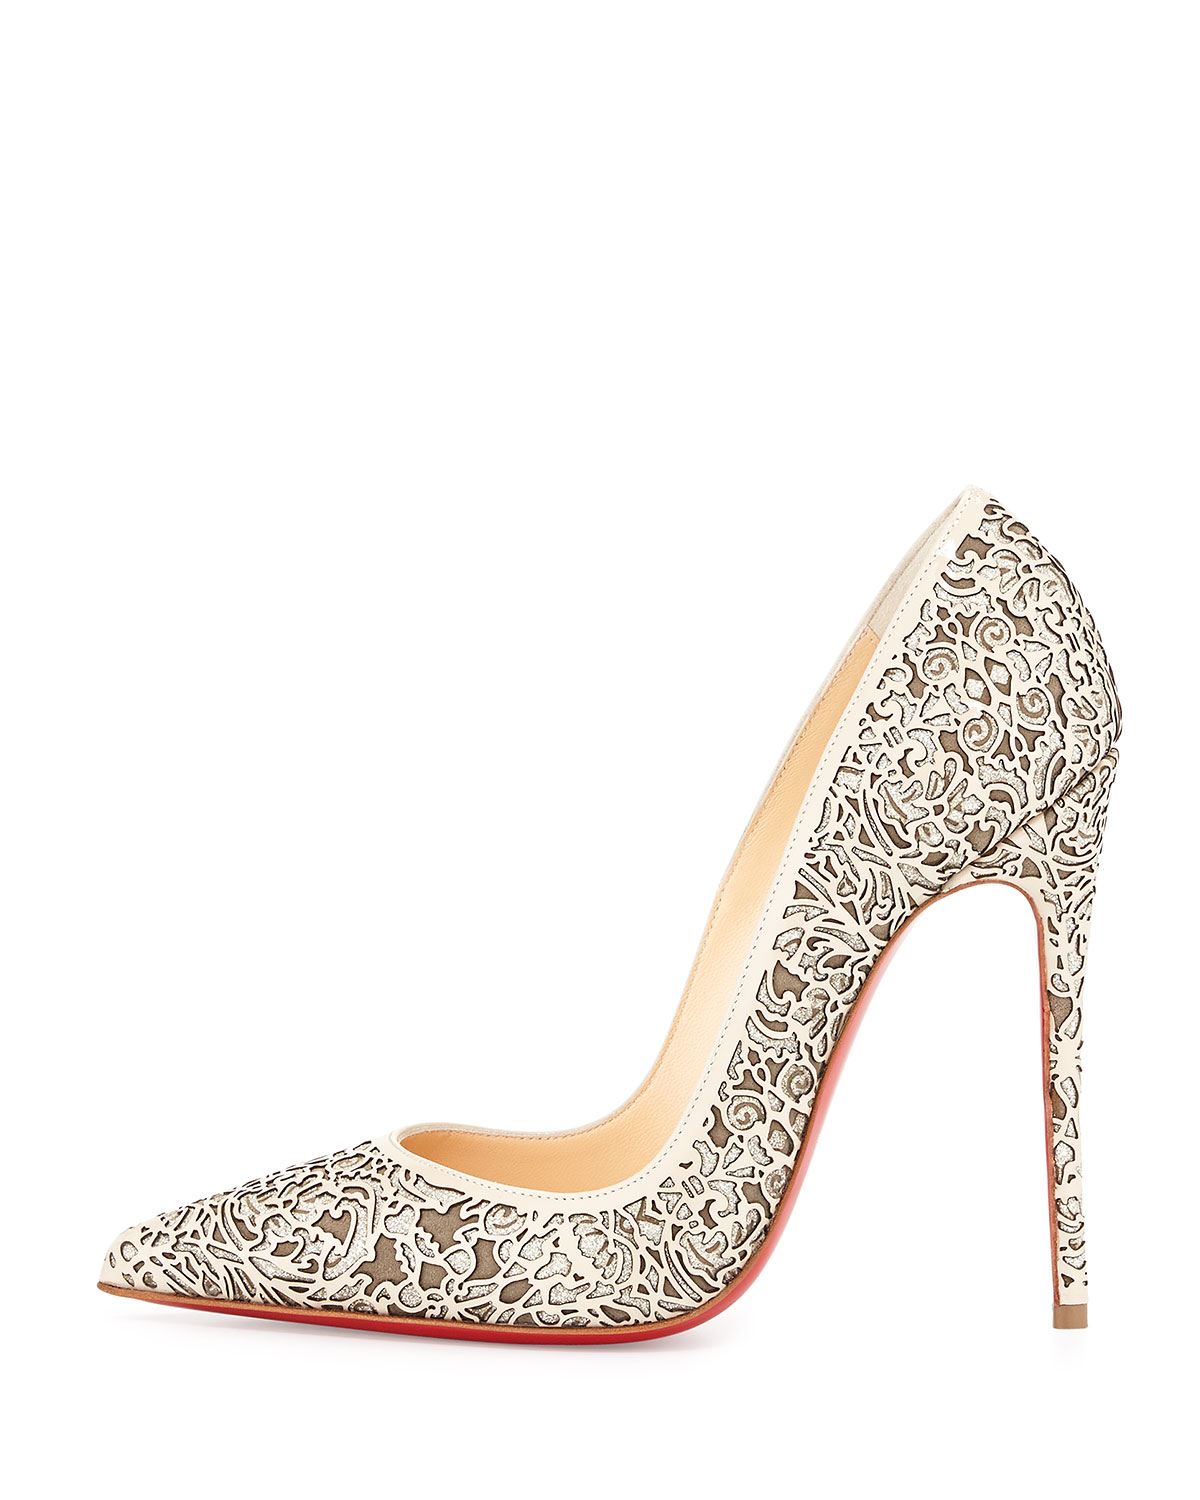 size 40 0f93d d2915 Price of Christian Louboutin Heels in South Africa | Luxity